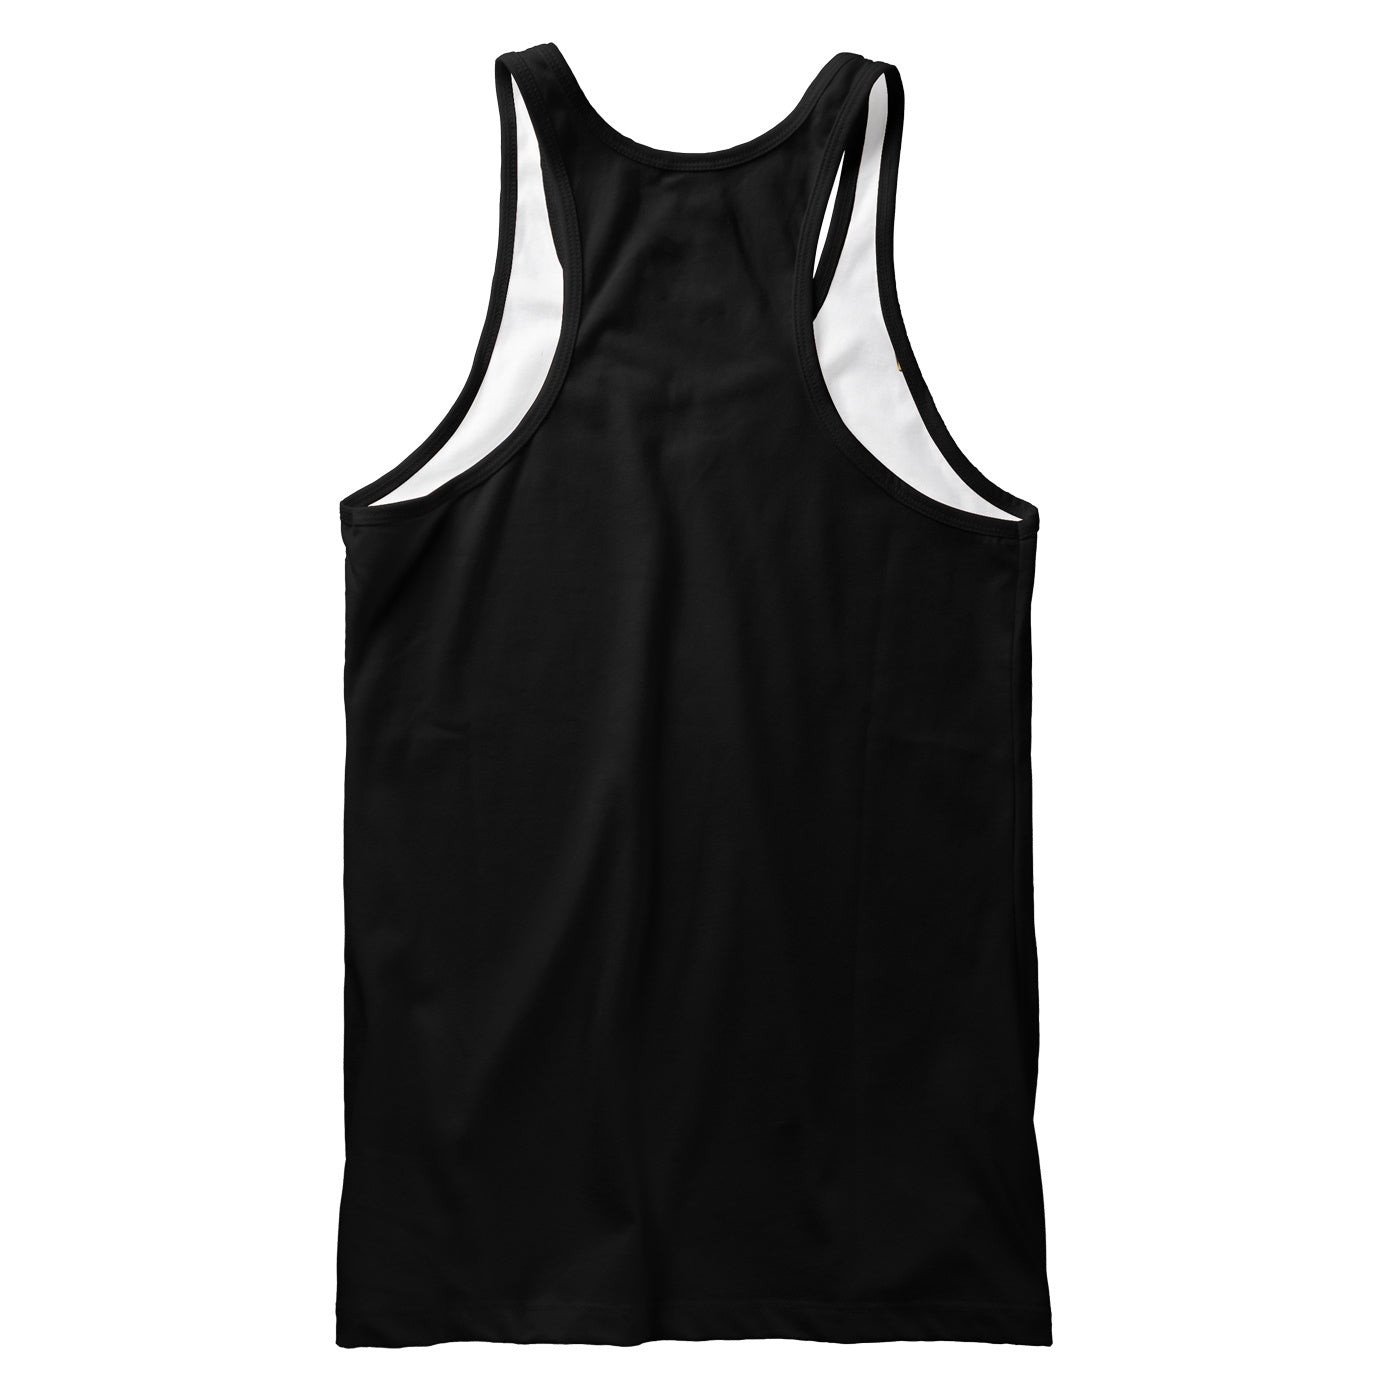 Downtown Gentleman Tank Top